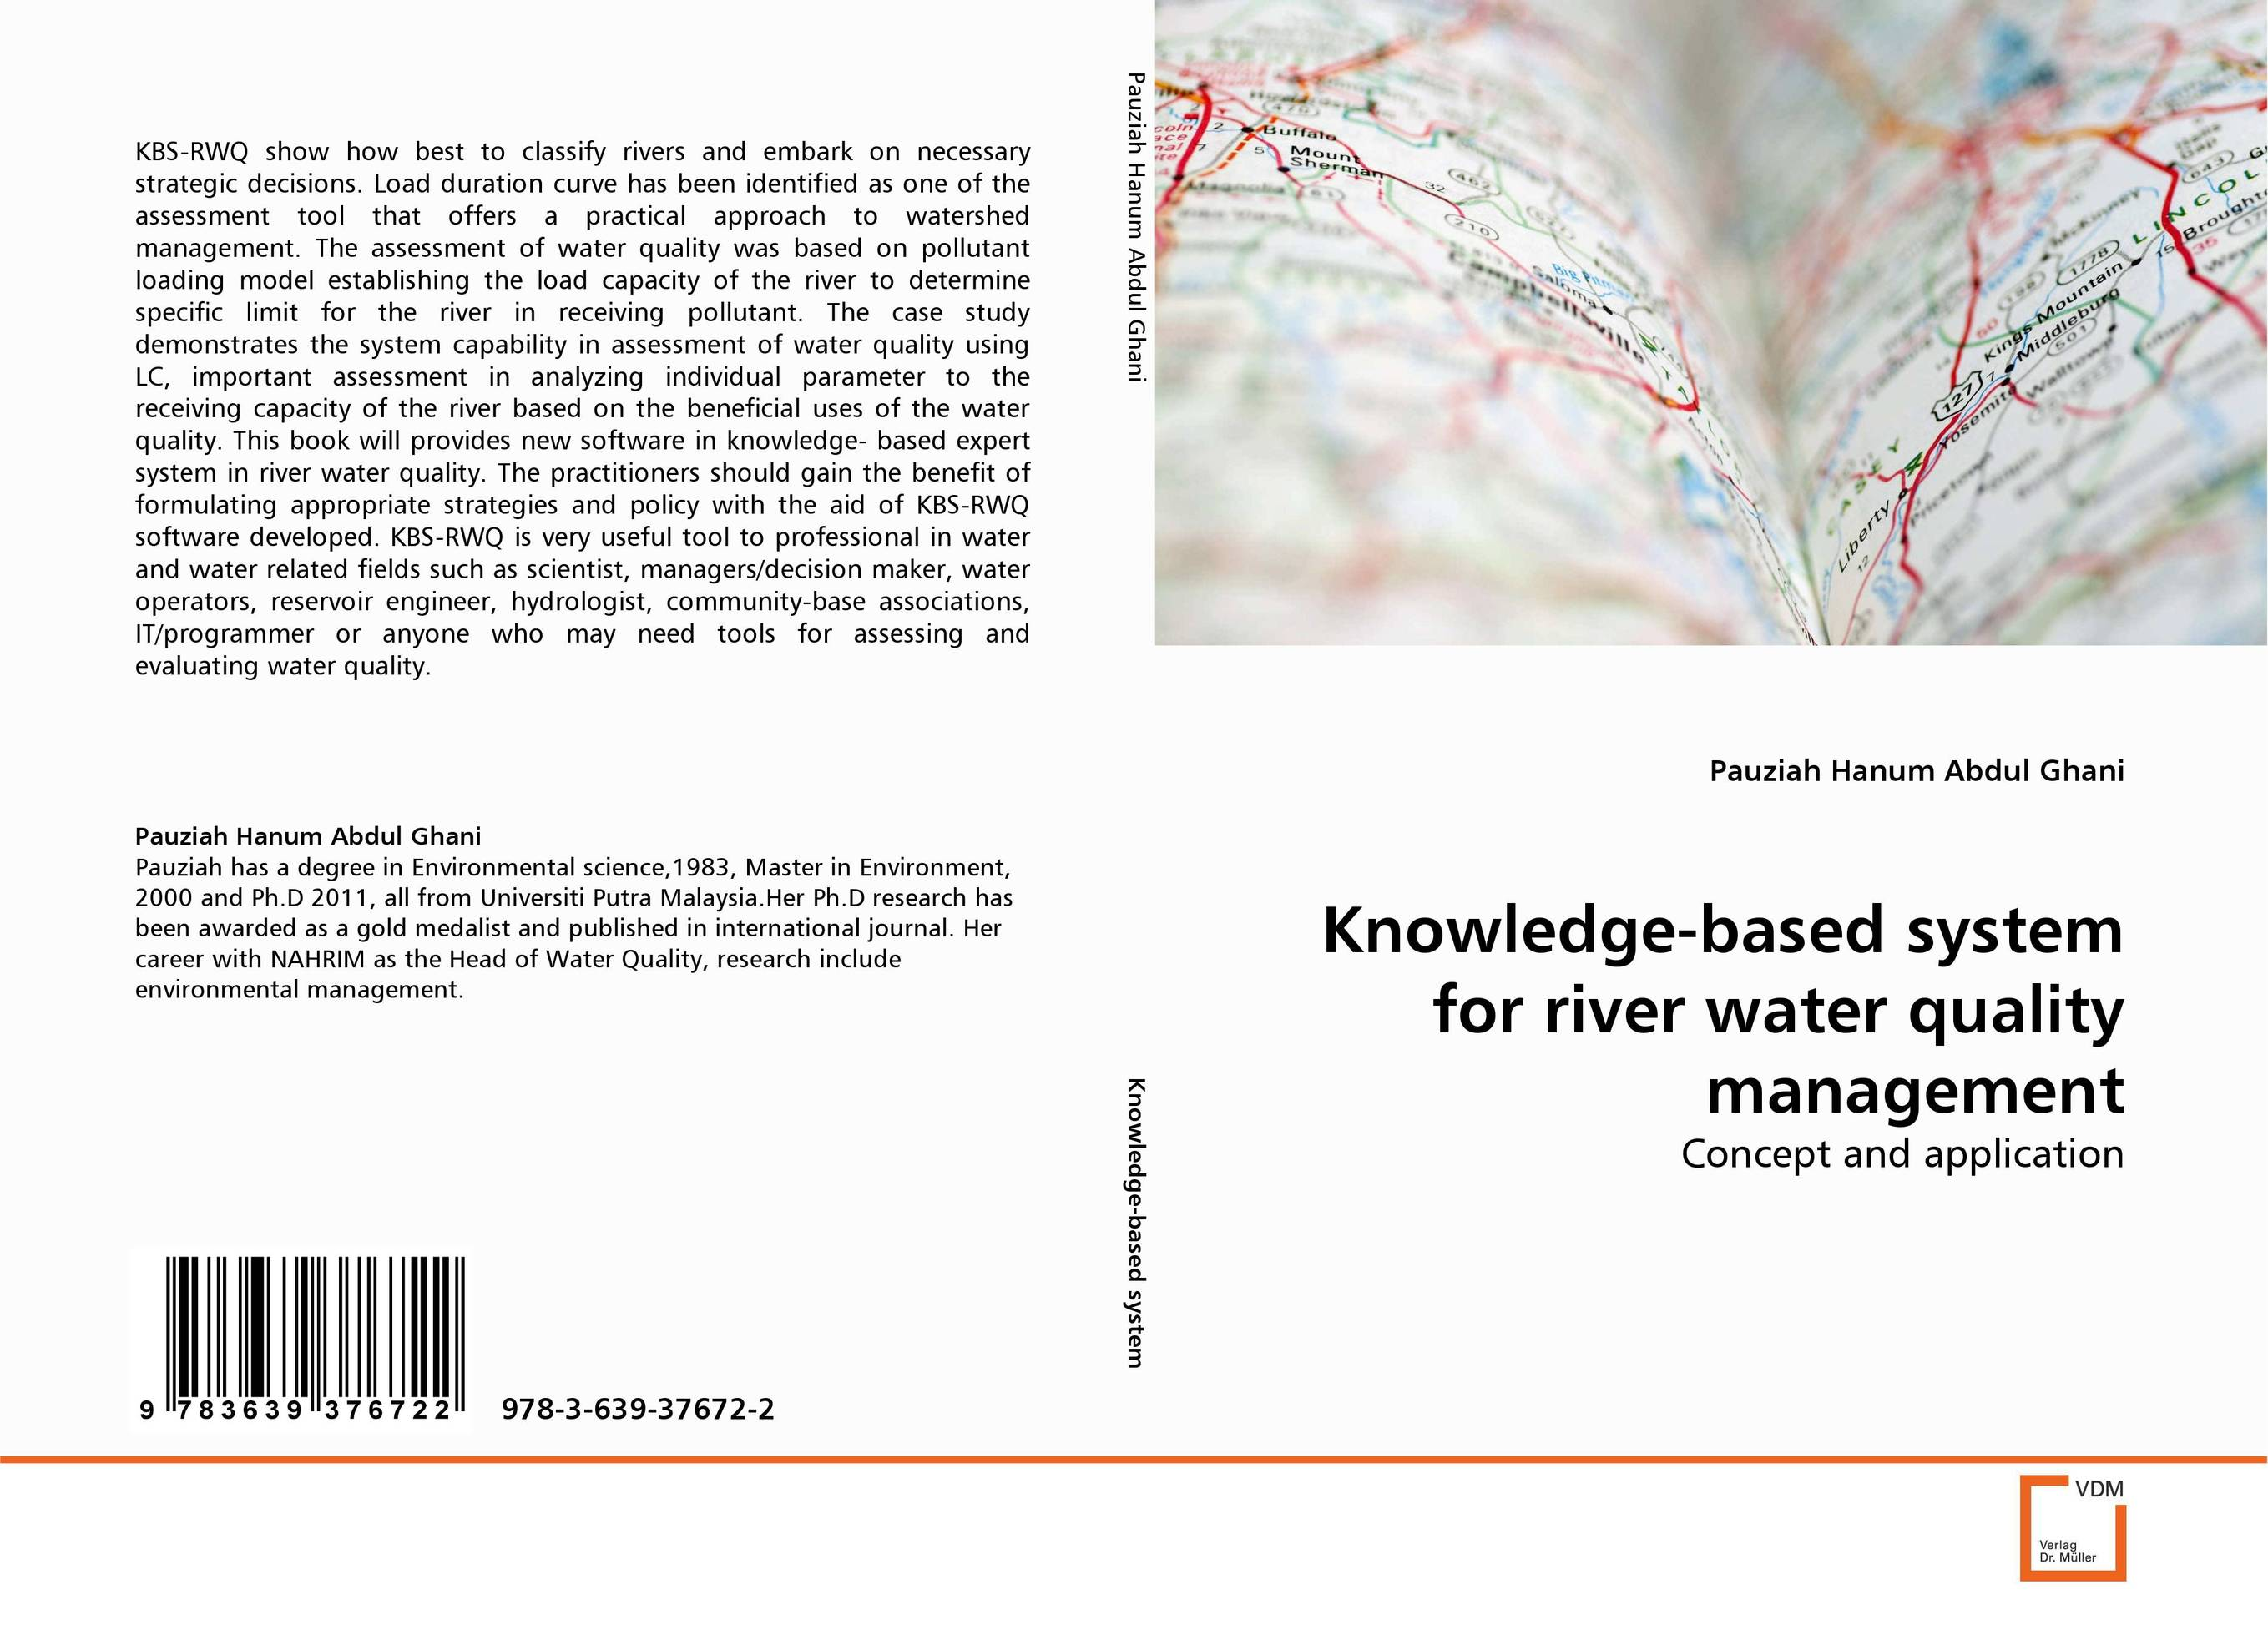 Knowledge-based system for river water quality management bride of the water god v 3